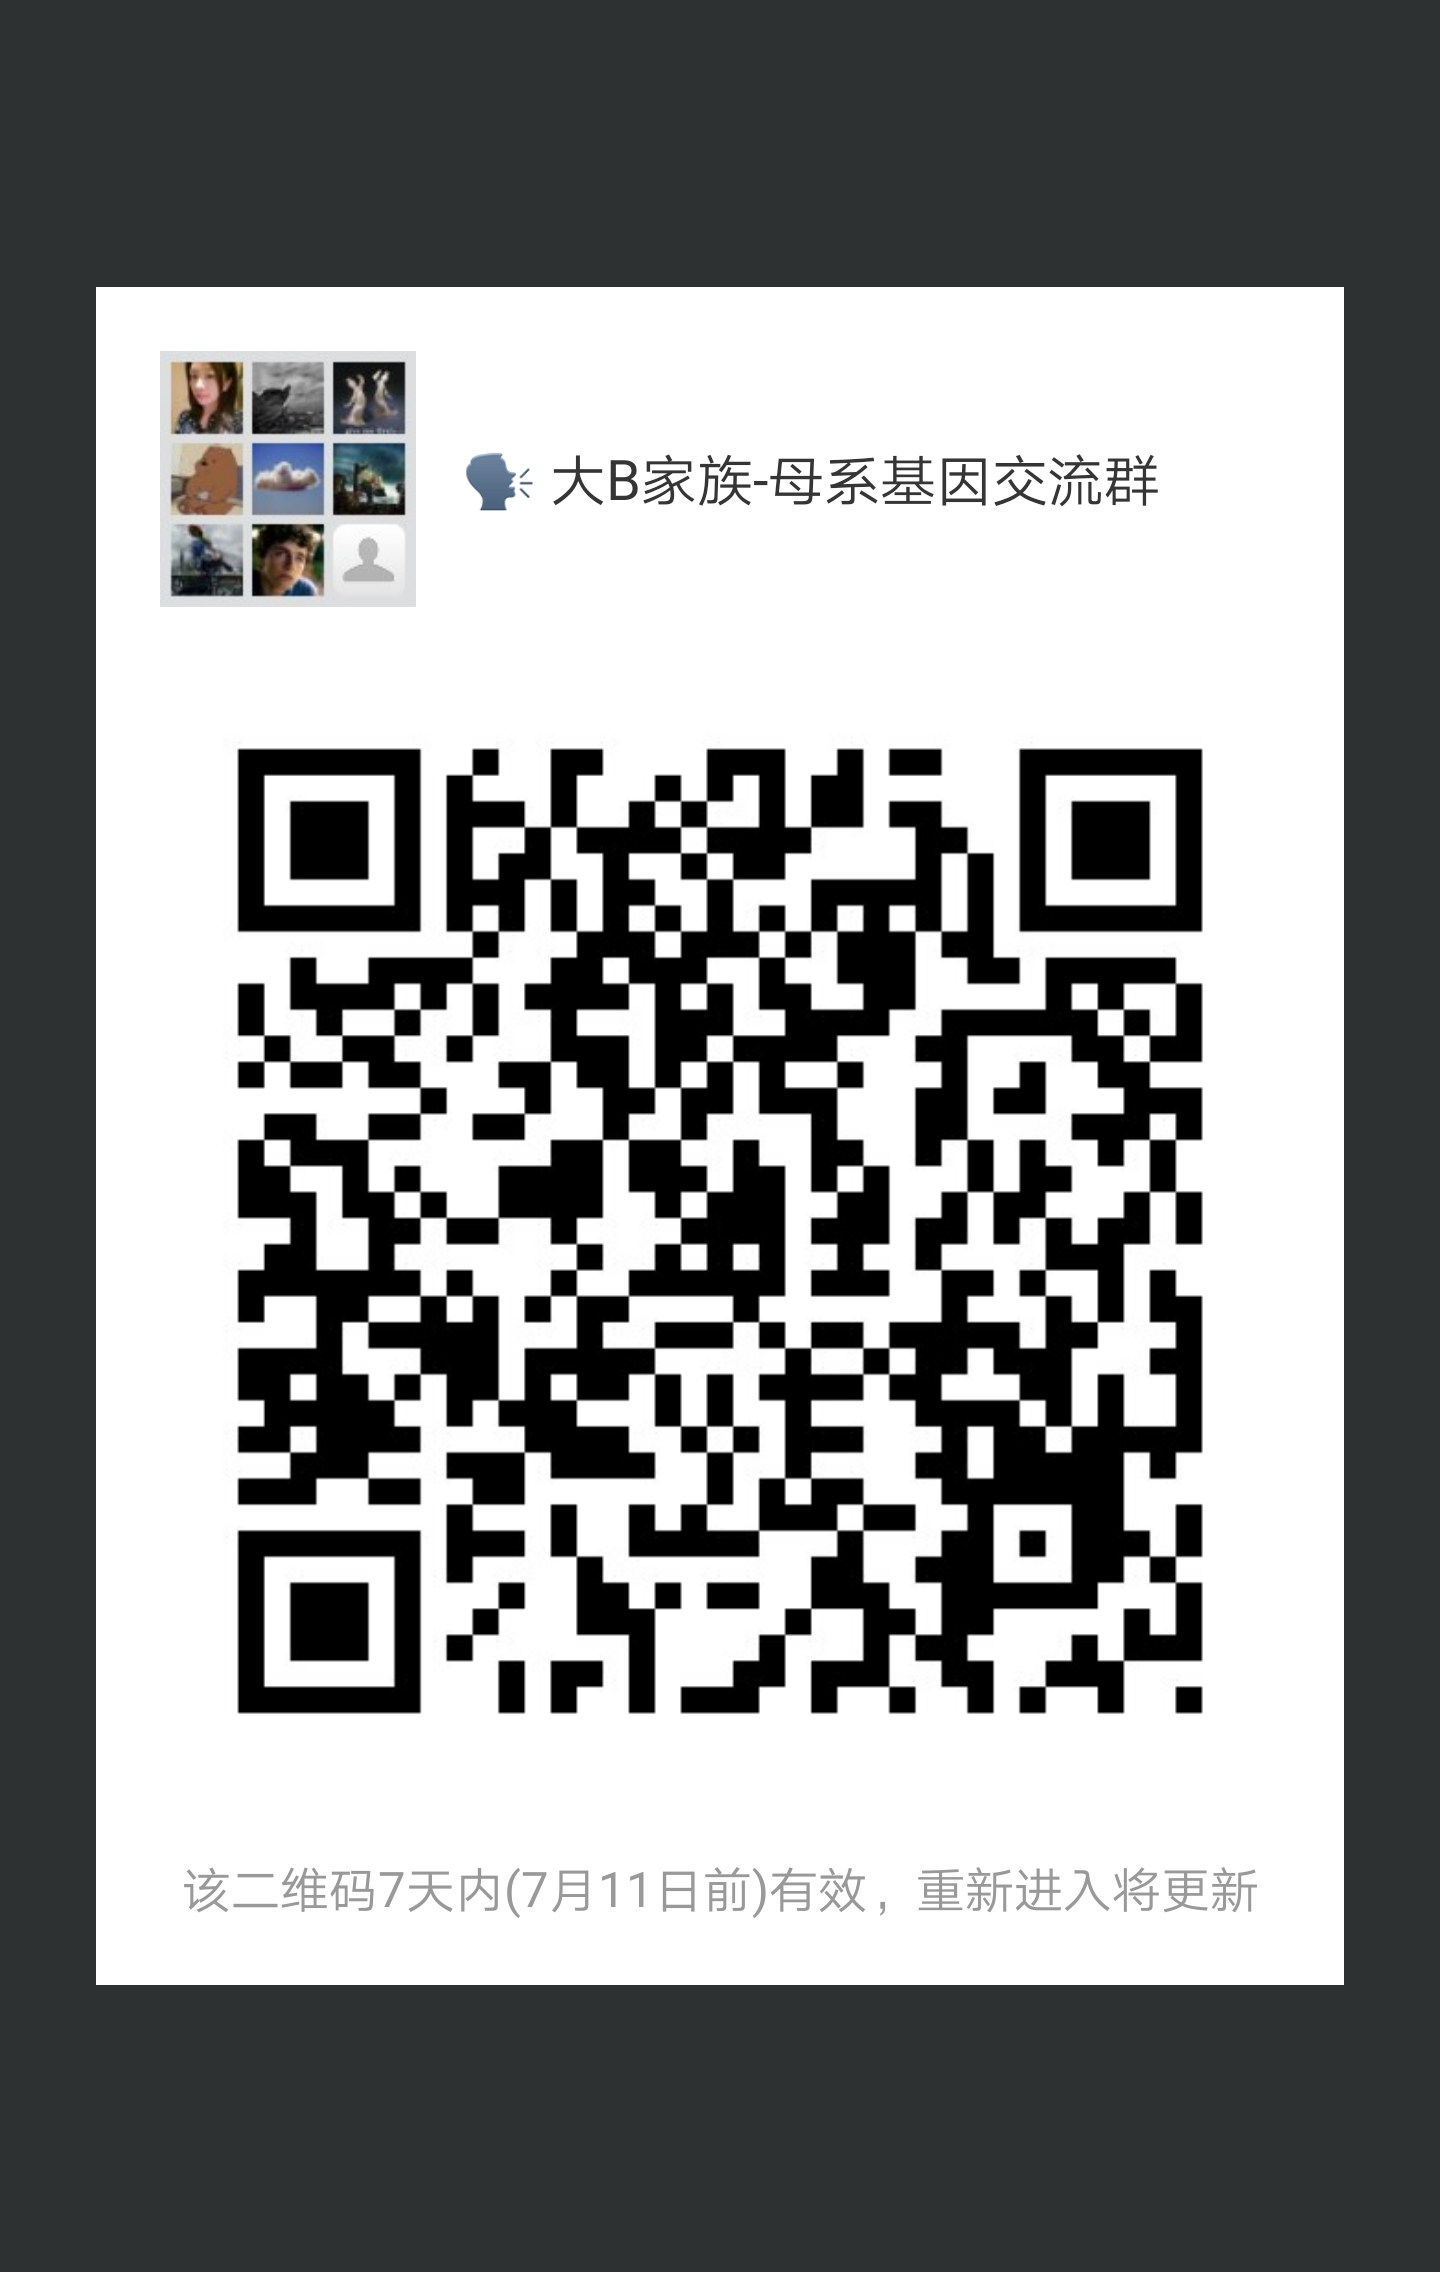 mmqrcode1530708532513.png